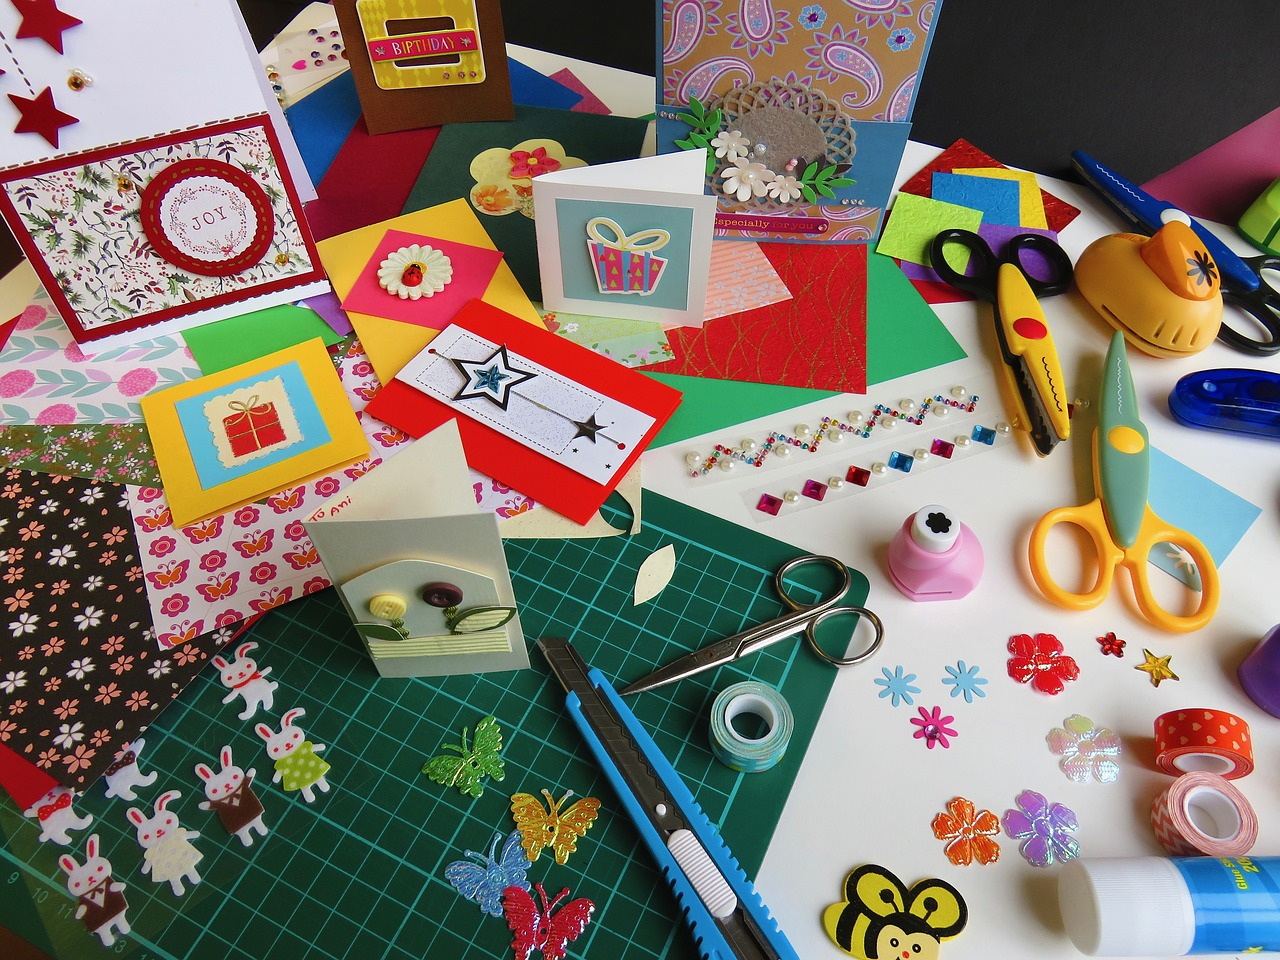 7 Good Reasons to Start Doing Crafts